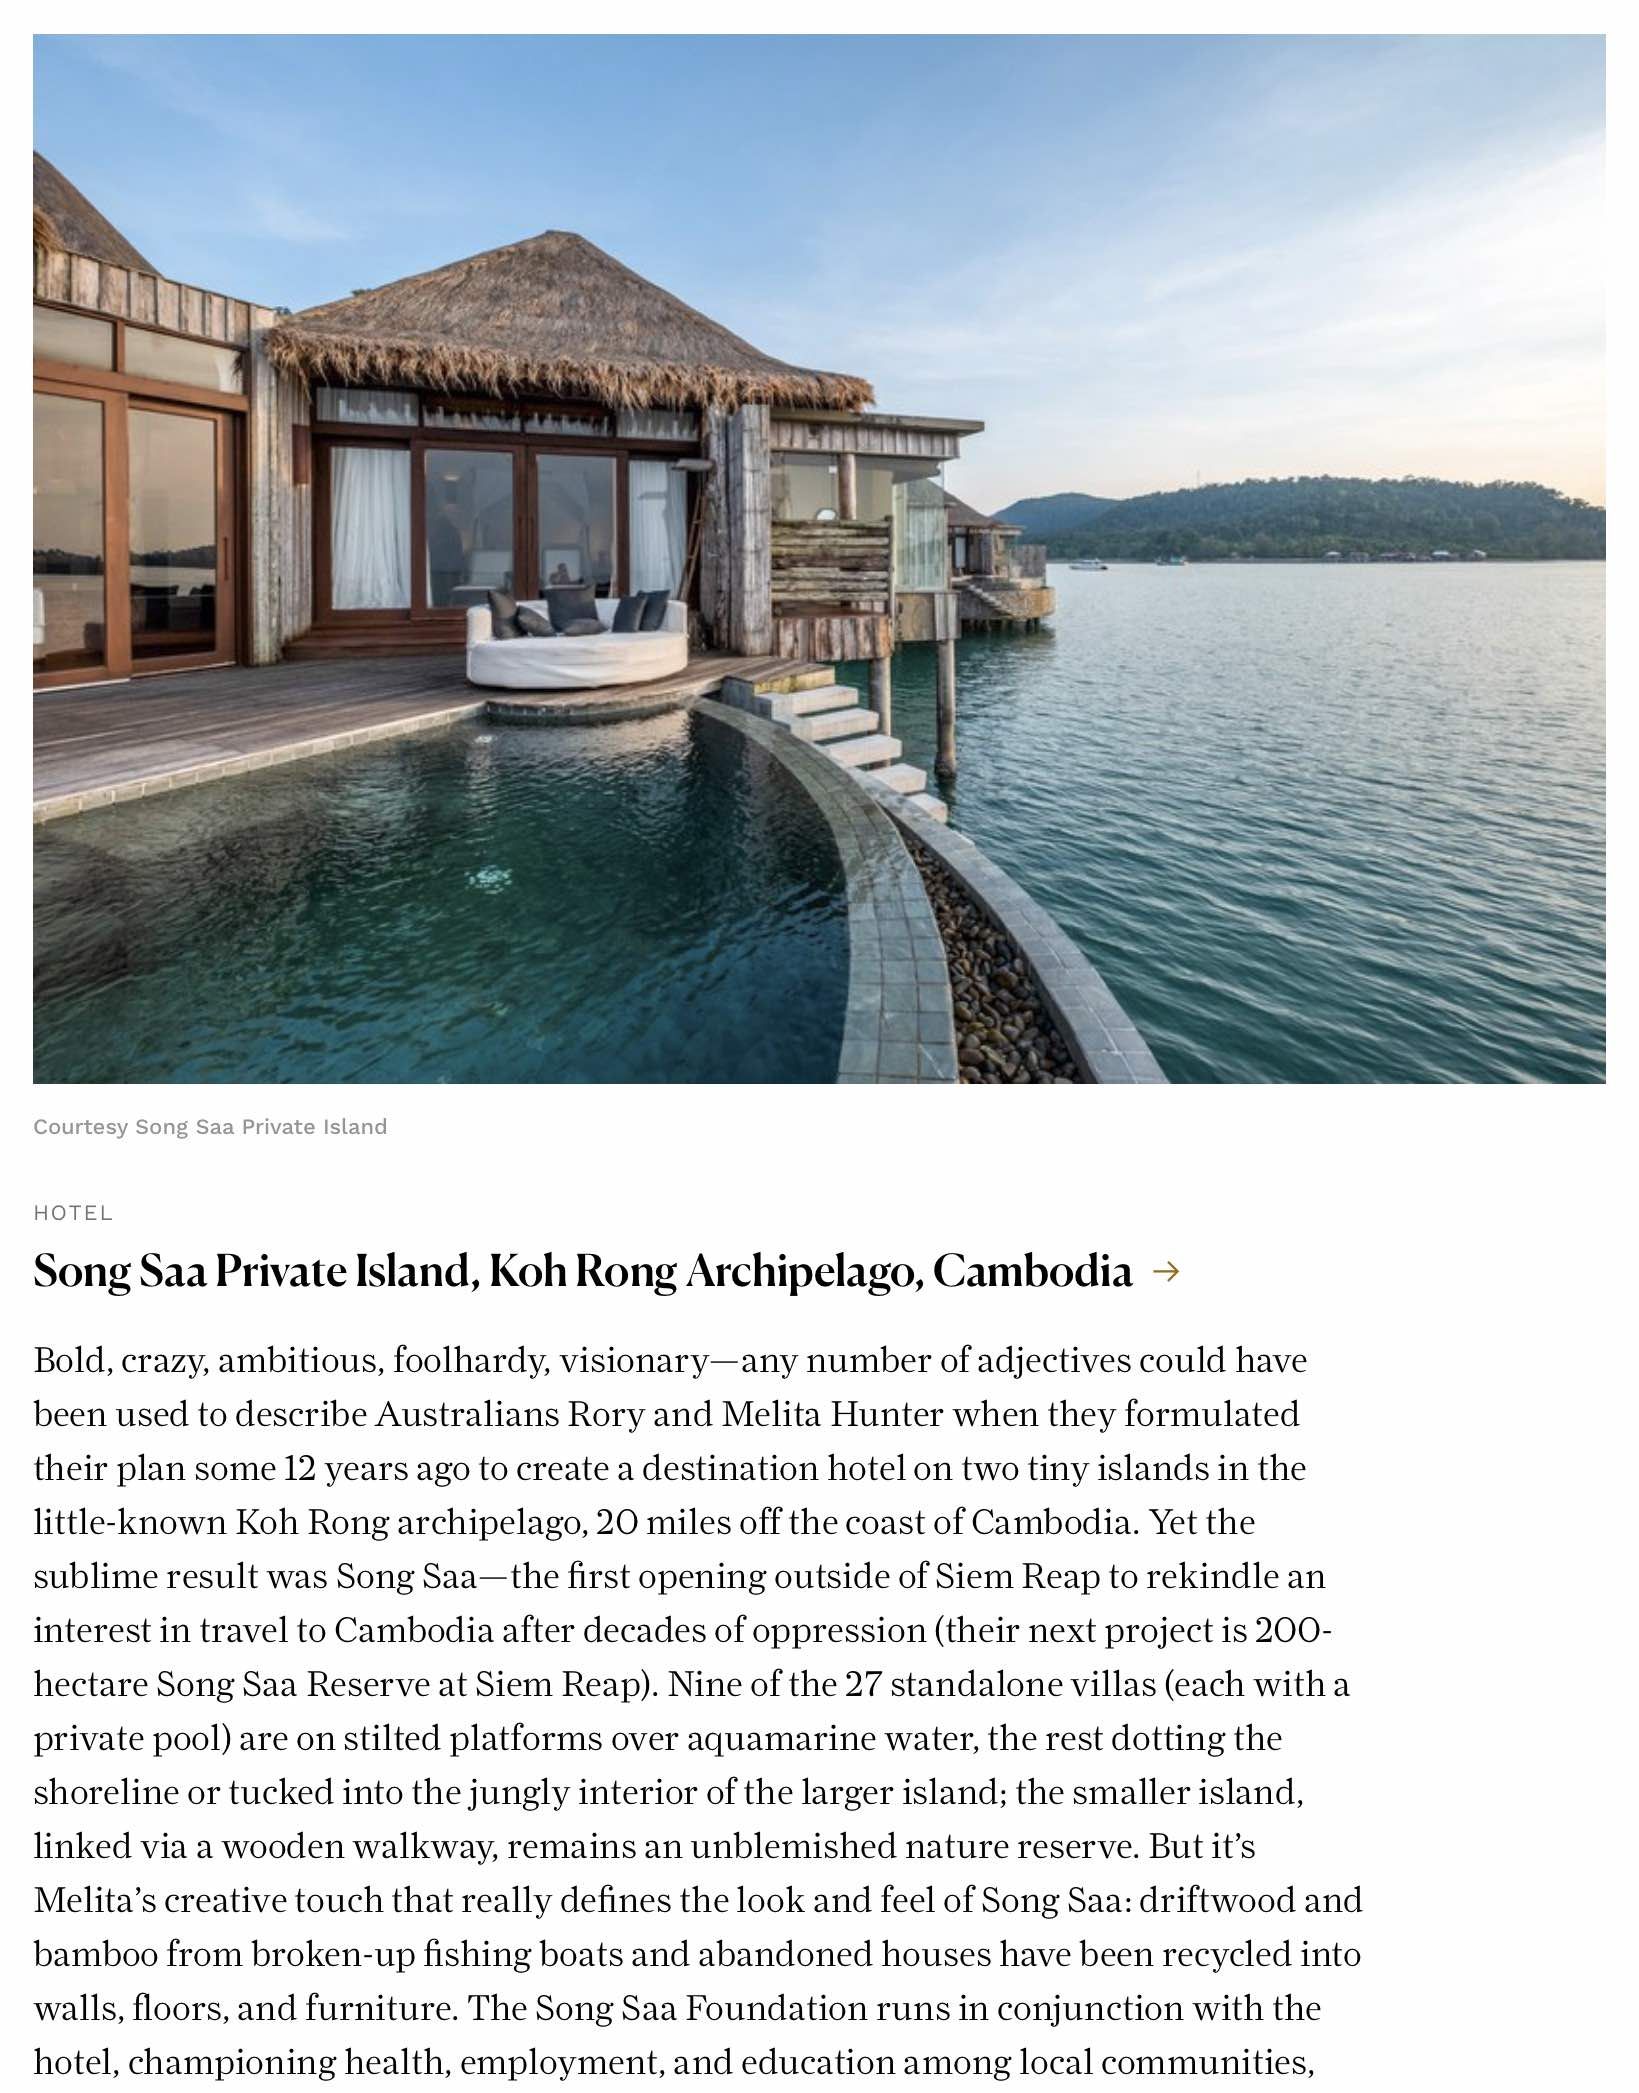 Conde Nast Traveler jose jeuland travel photographer cambodia song saa island asia